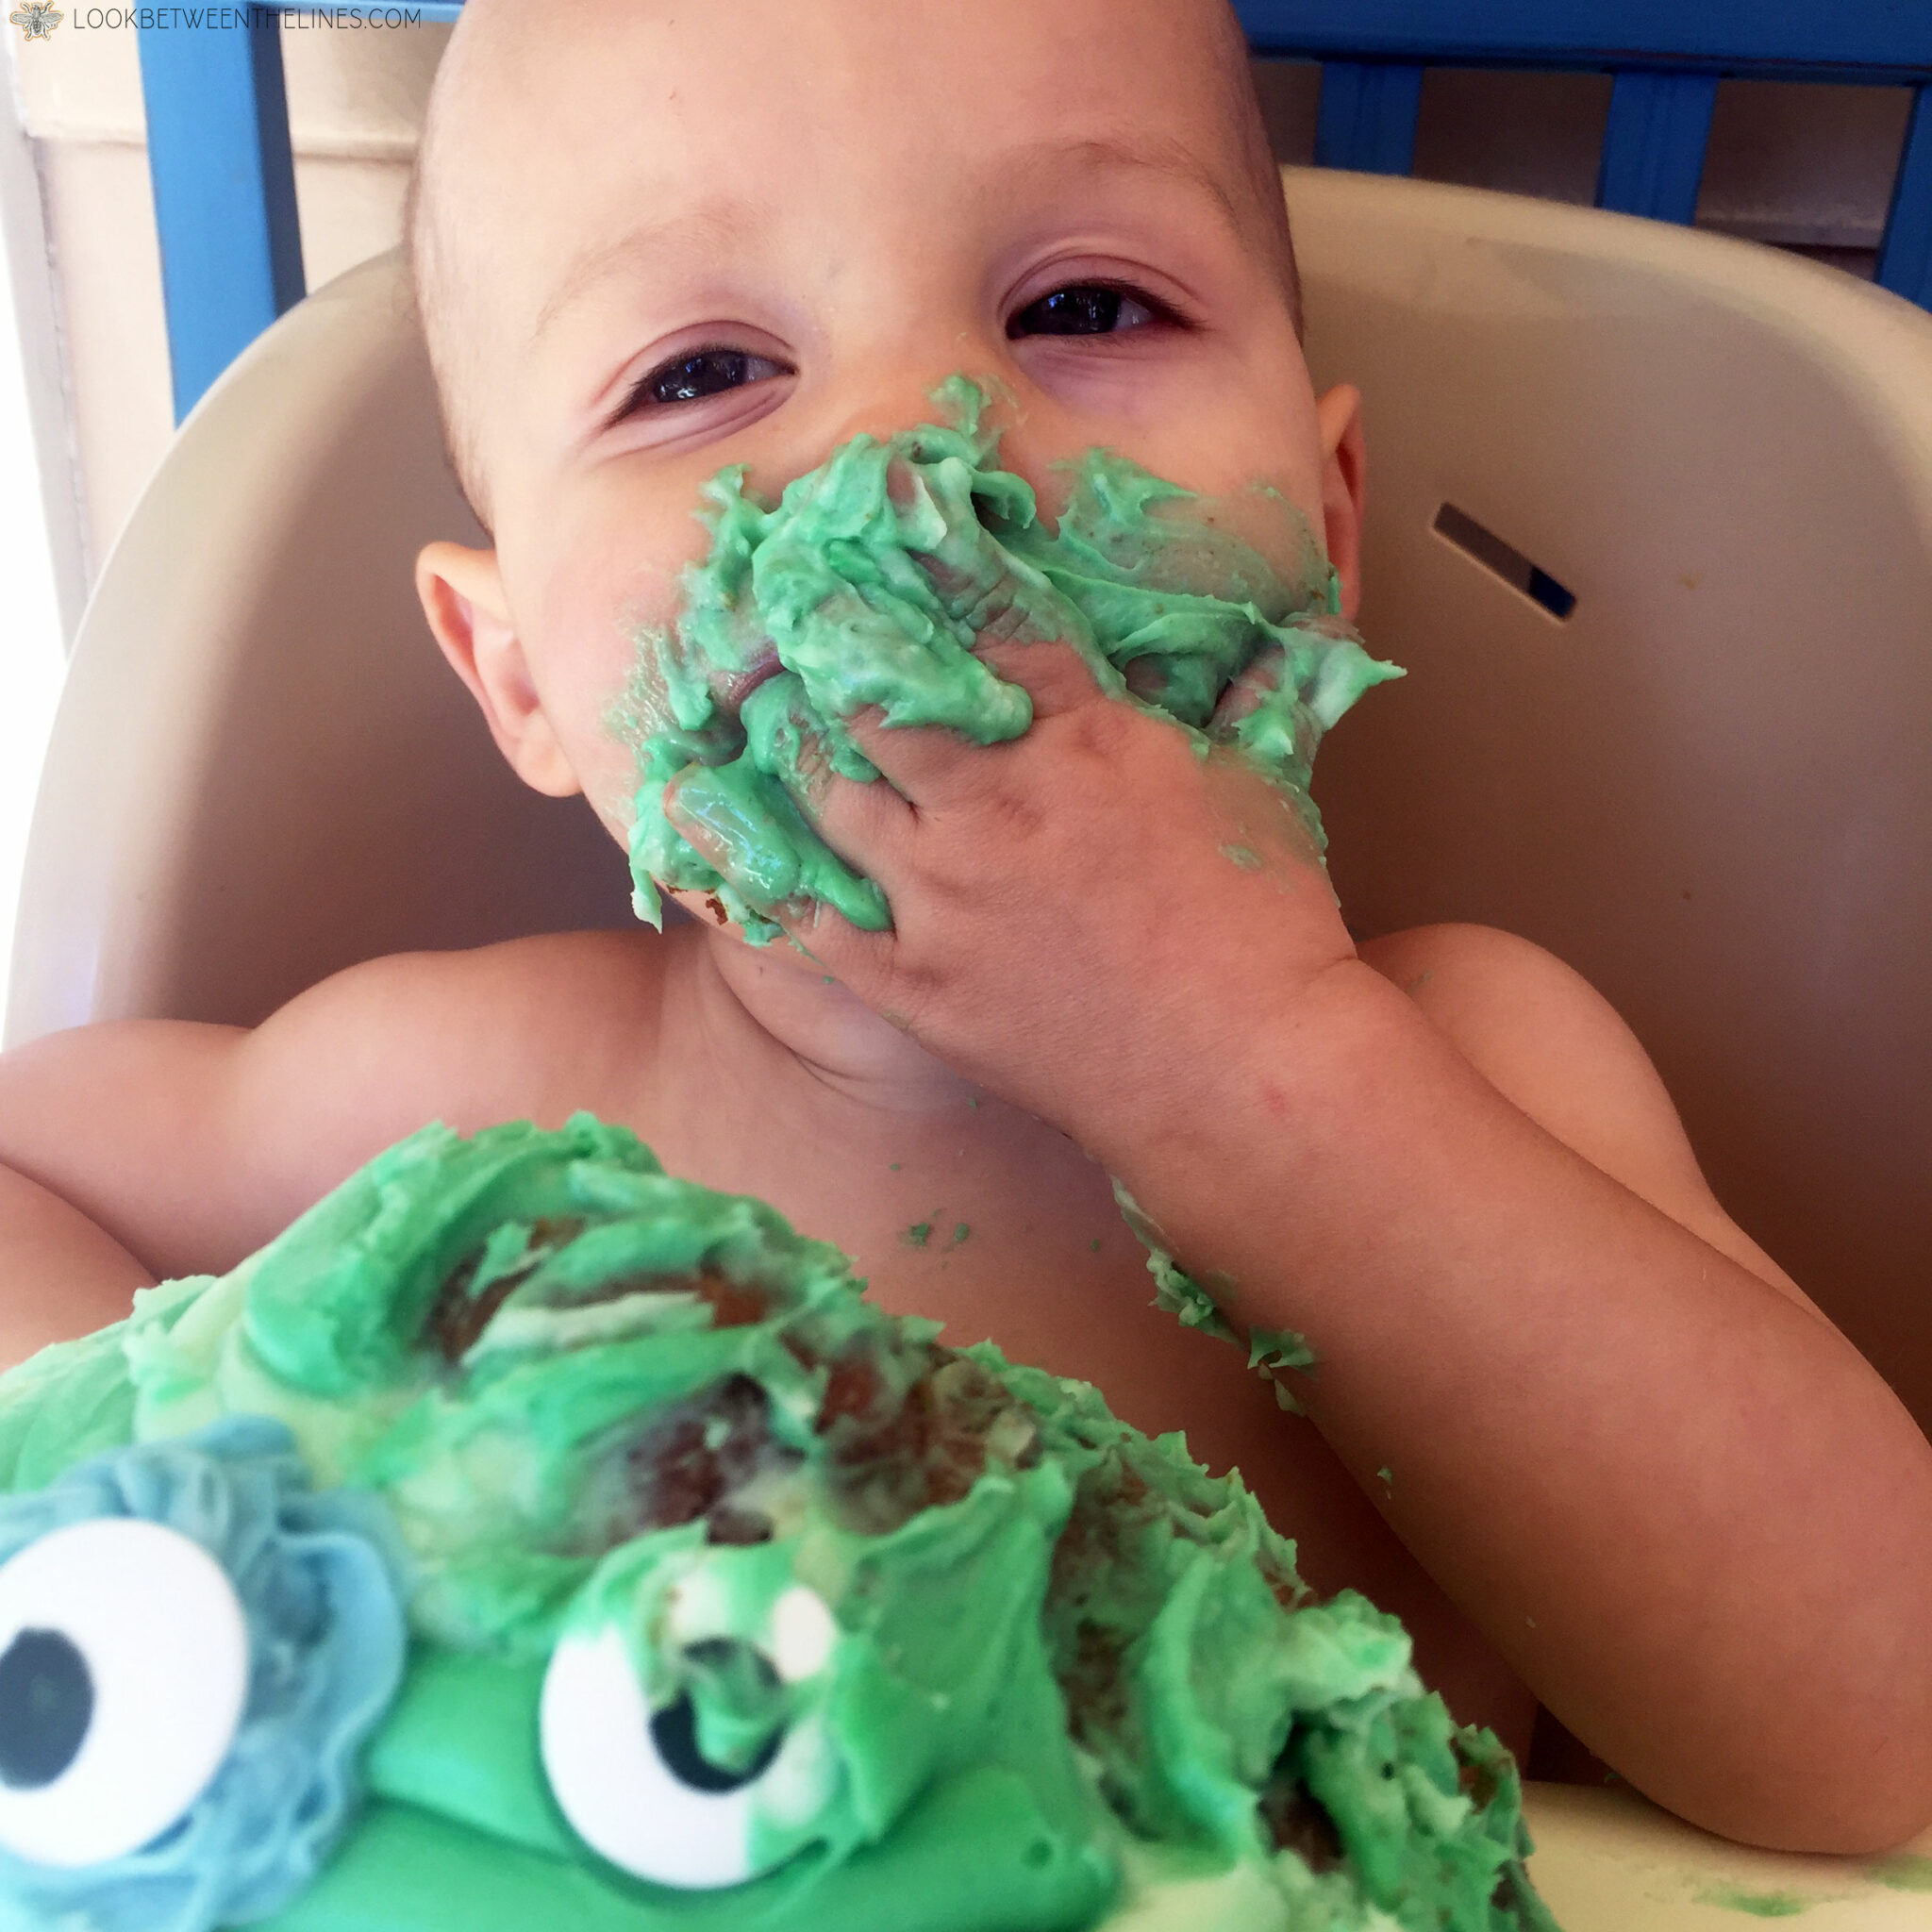 Cooper's monster mash first birthday party. Eating cake.